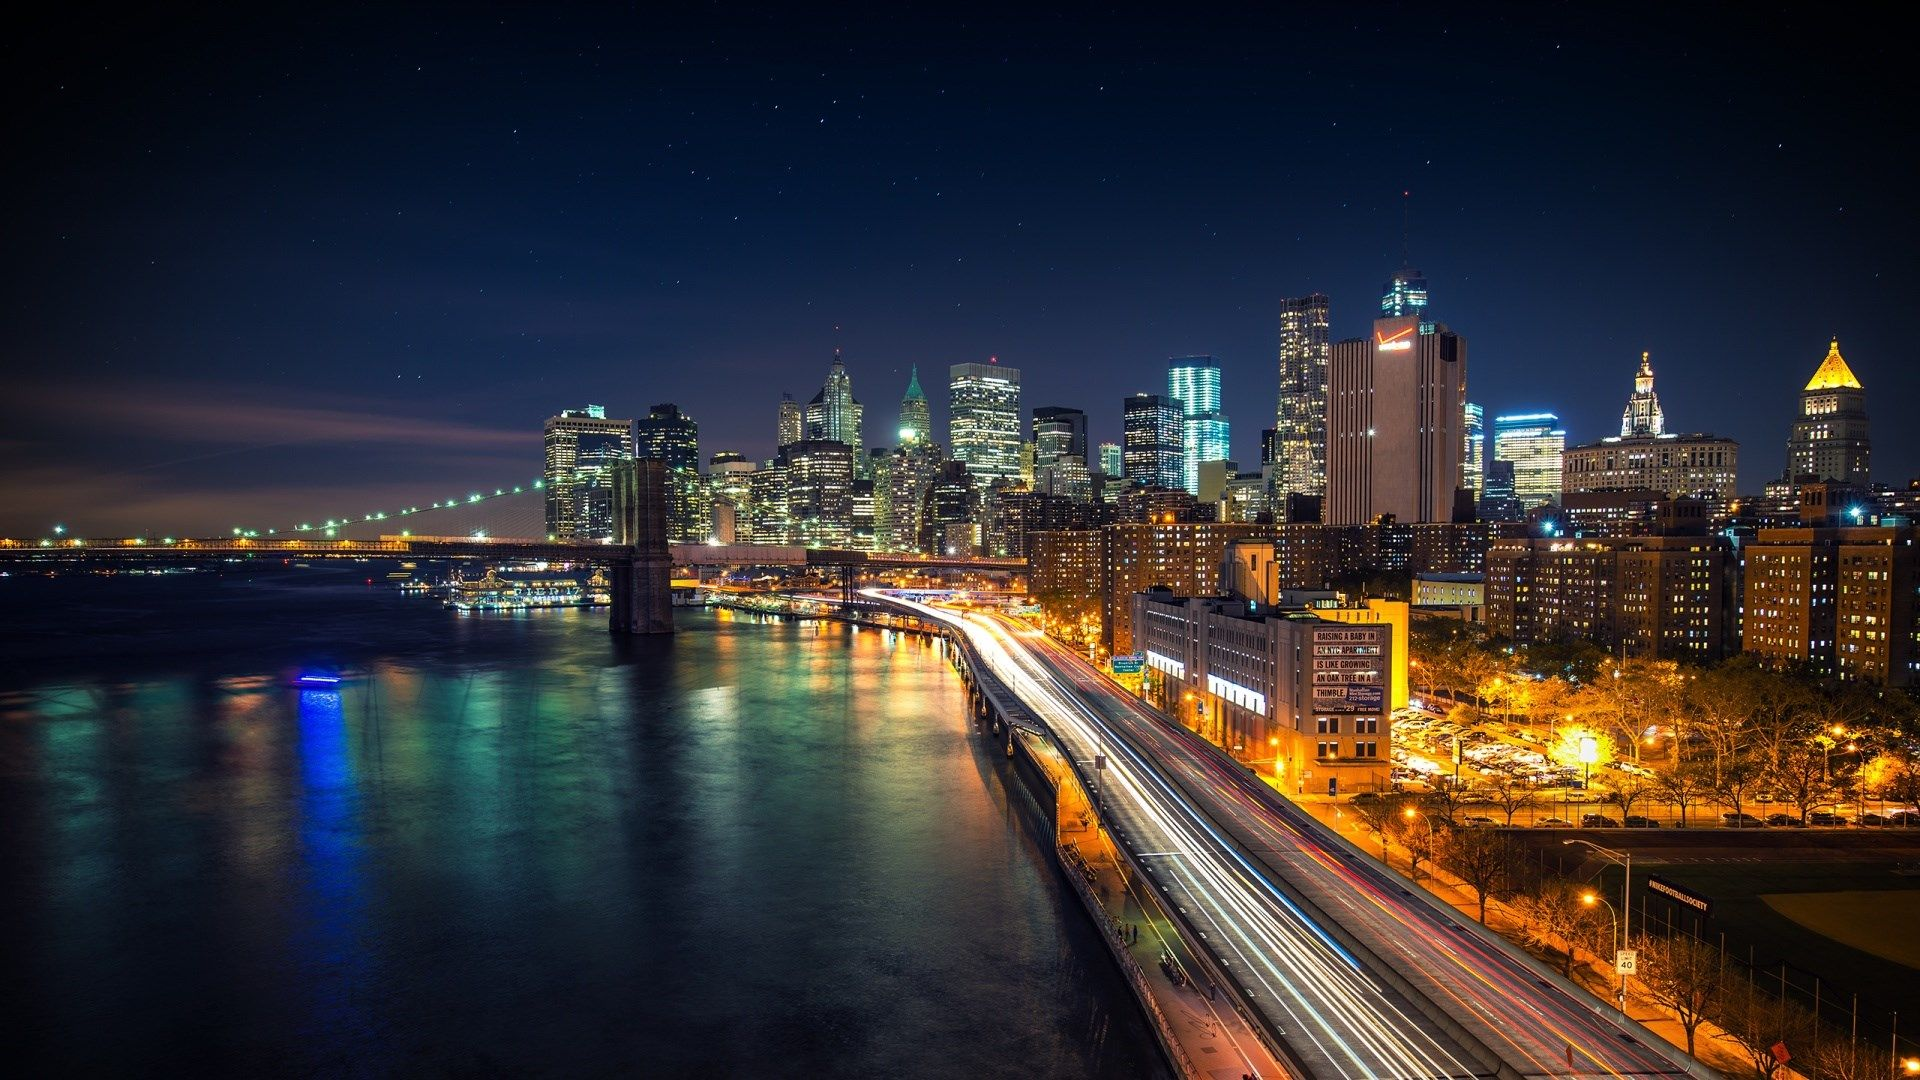 download free city 1080p background hd